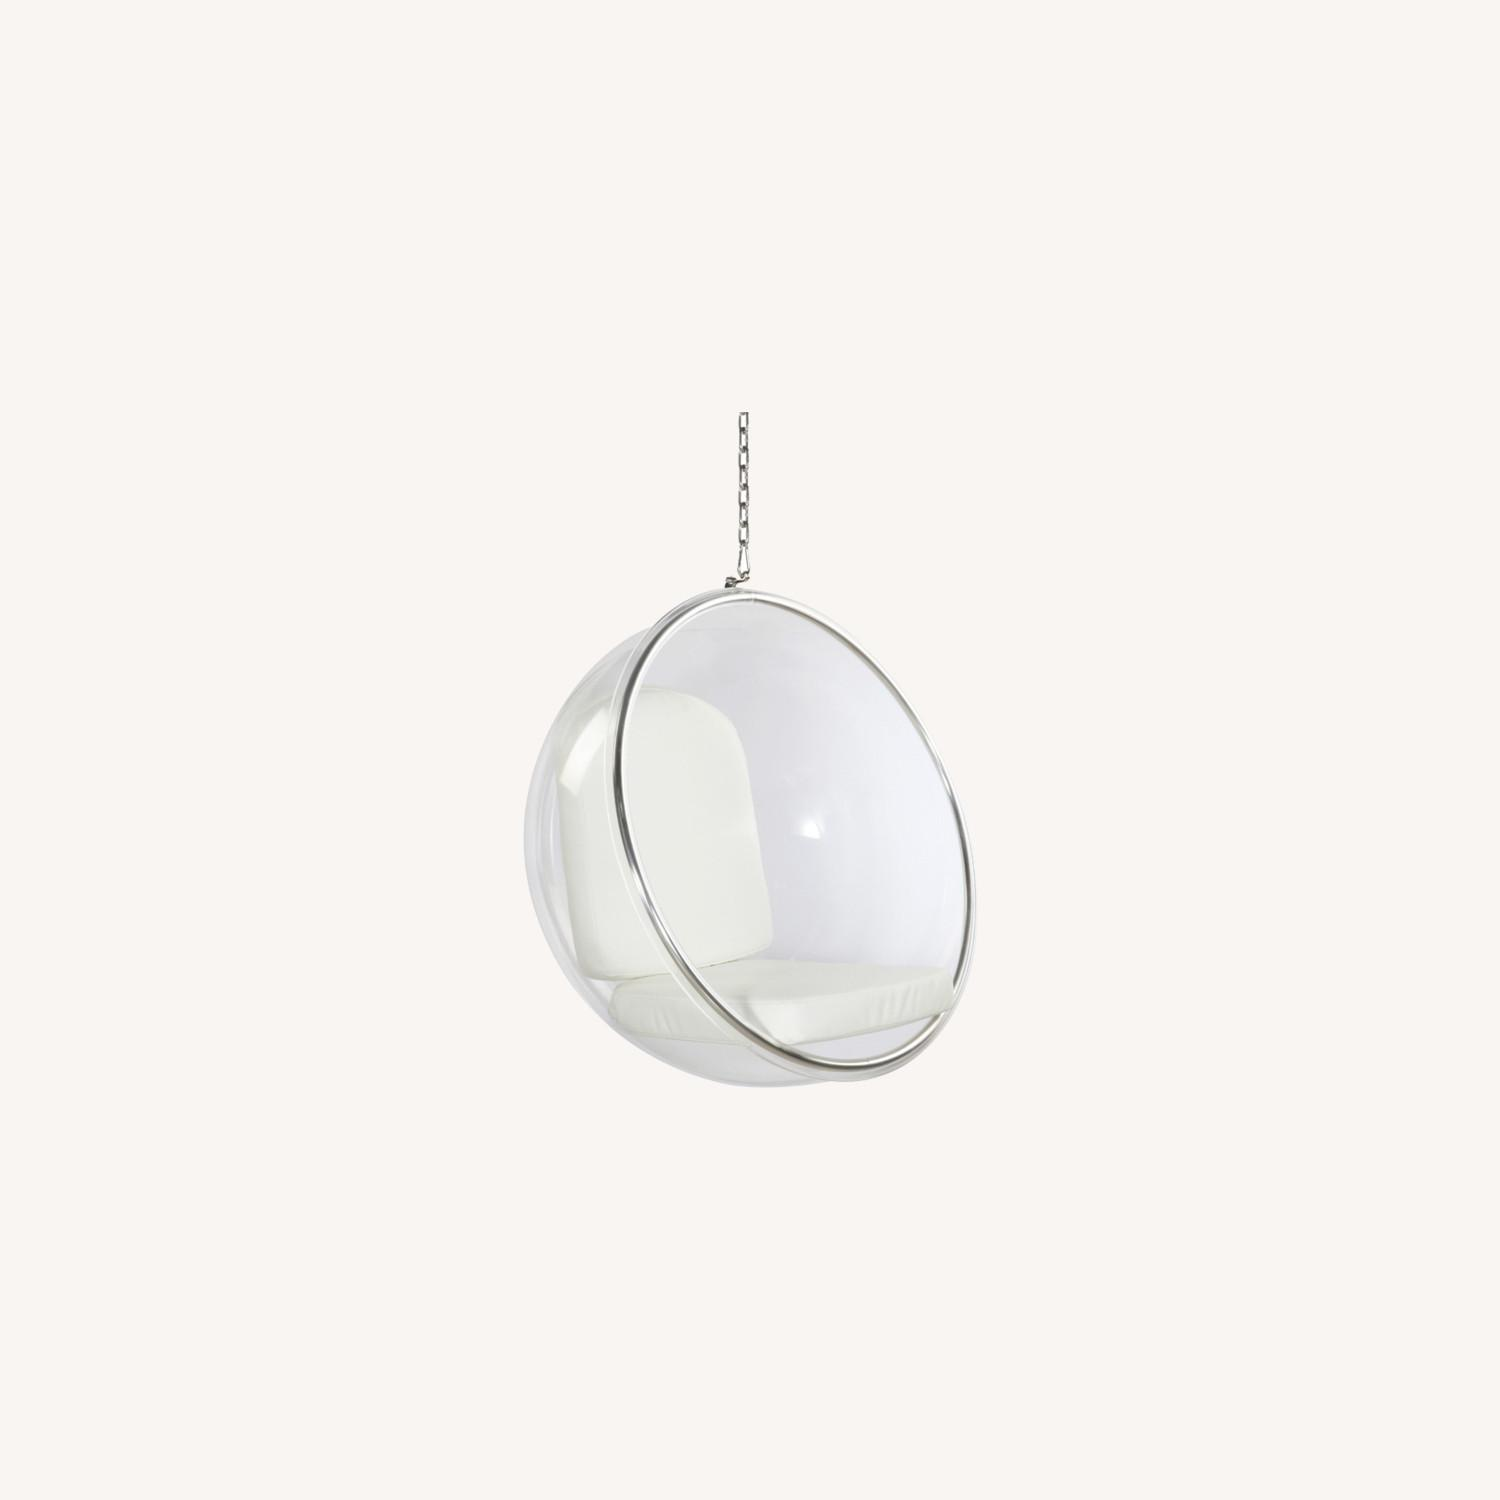 Hanging Chair In Clear Acrylic & White PU Leather - image-7